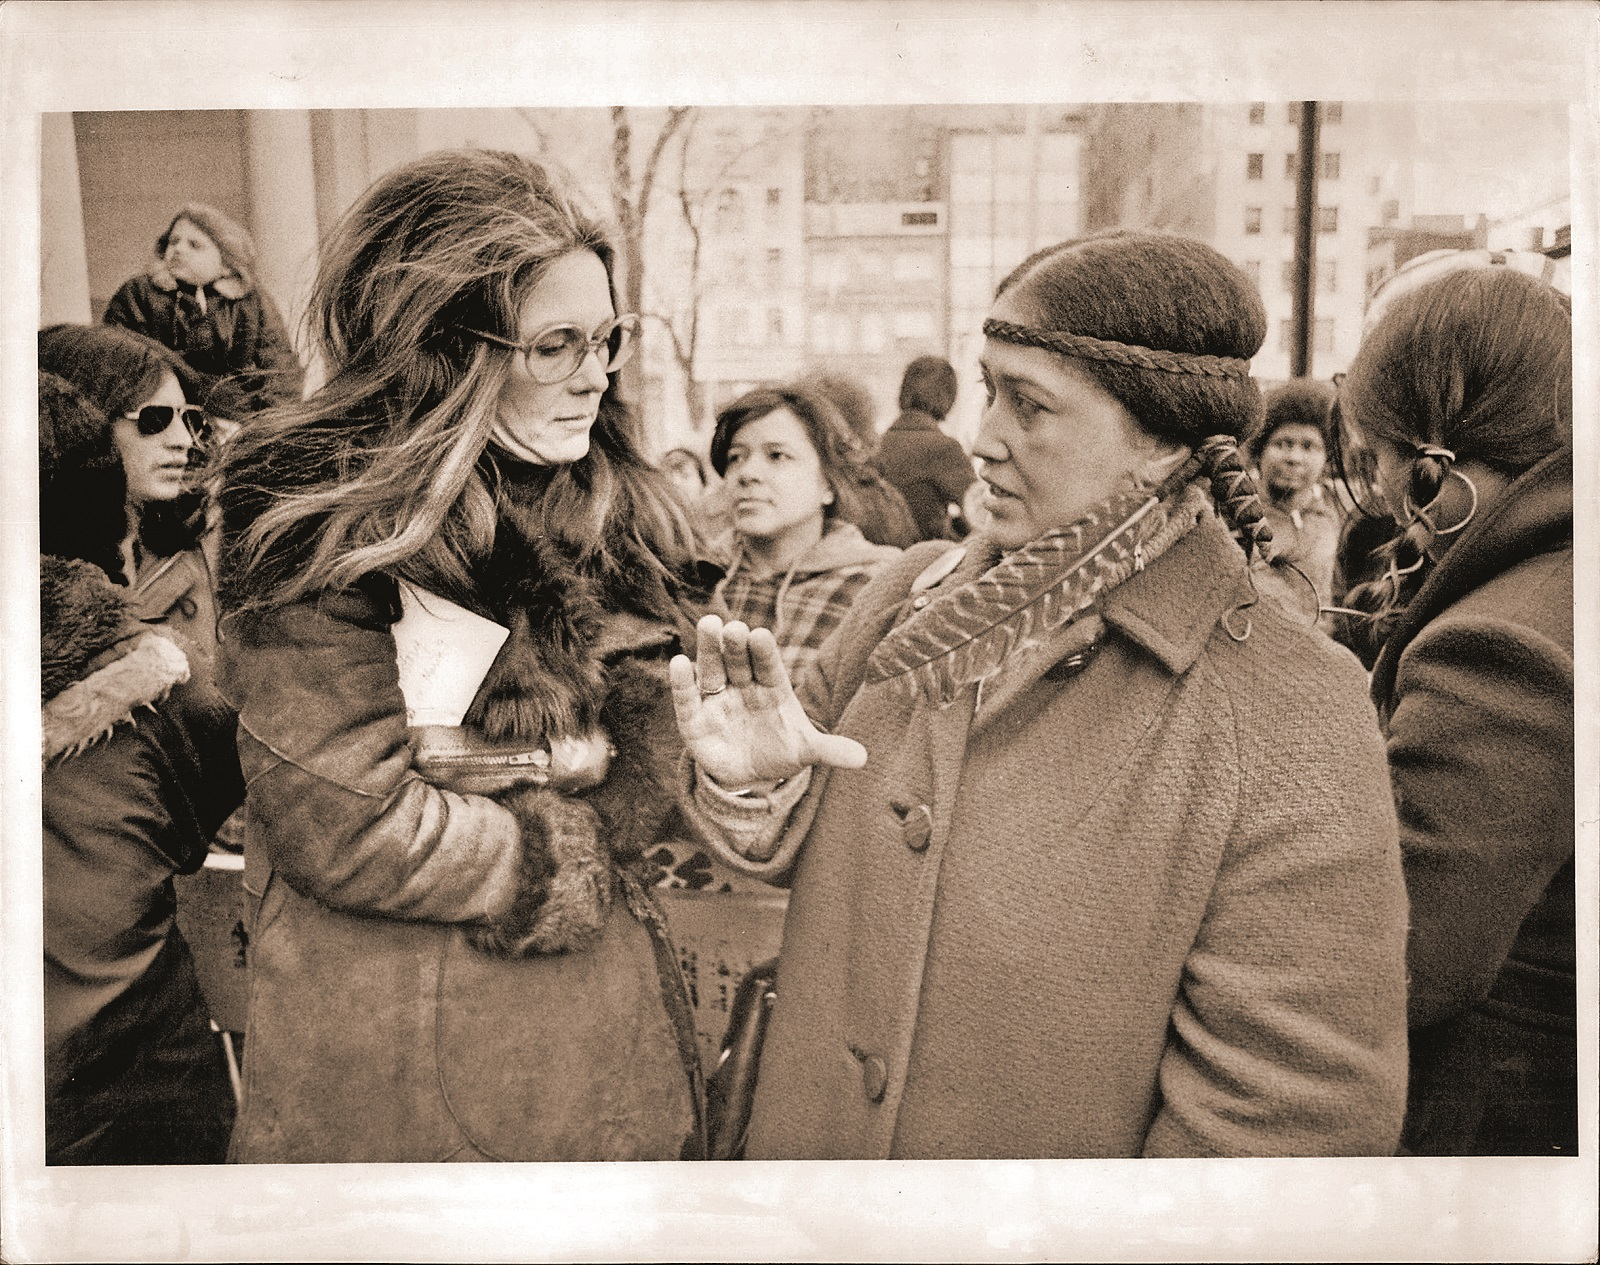 Mar. 03, 1975 - International Womens Day - New York City. Gloria Steinem and Paulene Haines - representative of the American Indian Movement, member of the Cherokee Nation.,Image: 209893389, License: Rights-managed, Restrictions: , Model Release: no, Credit line: Brian F. Alpert / Zuma Press / Profimedia